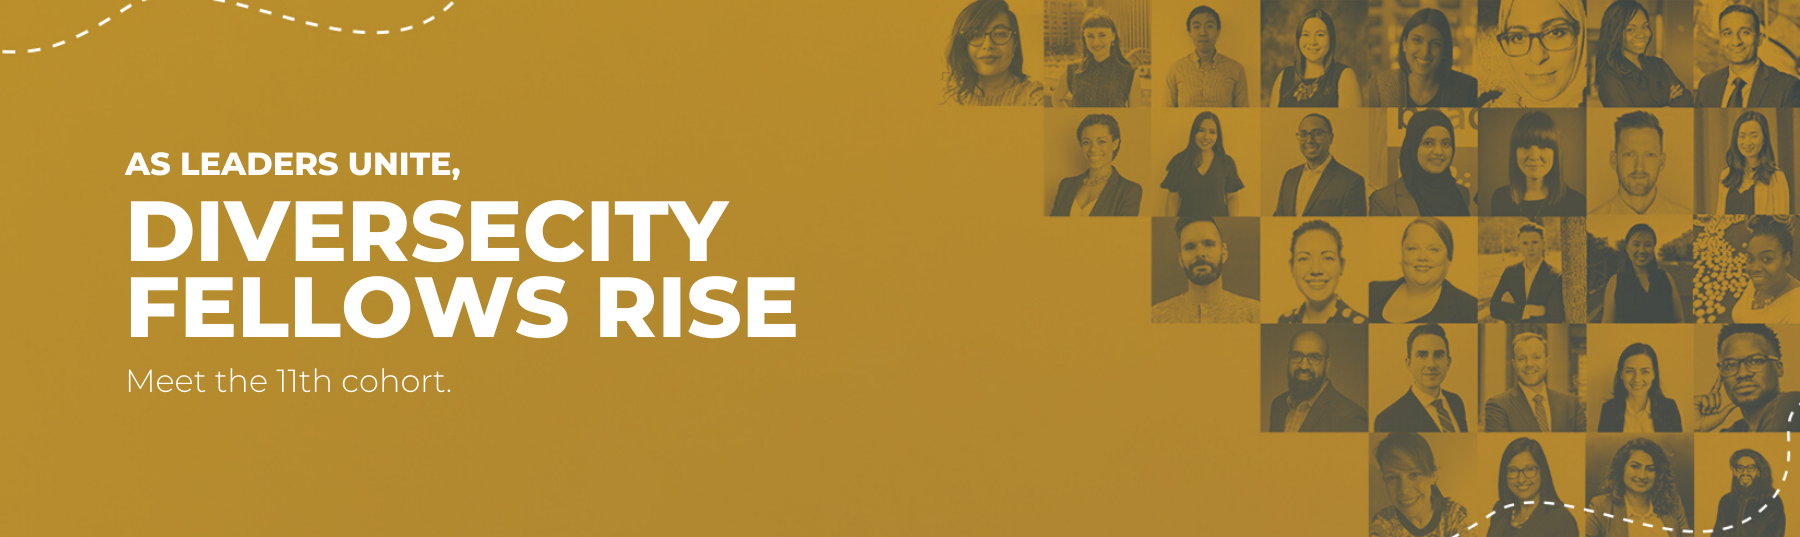 Meet the 11th cohort of DiverseCity Fellows.